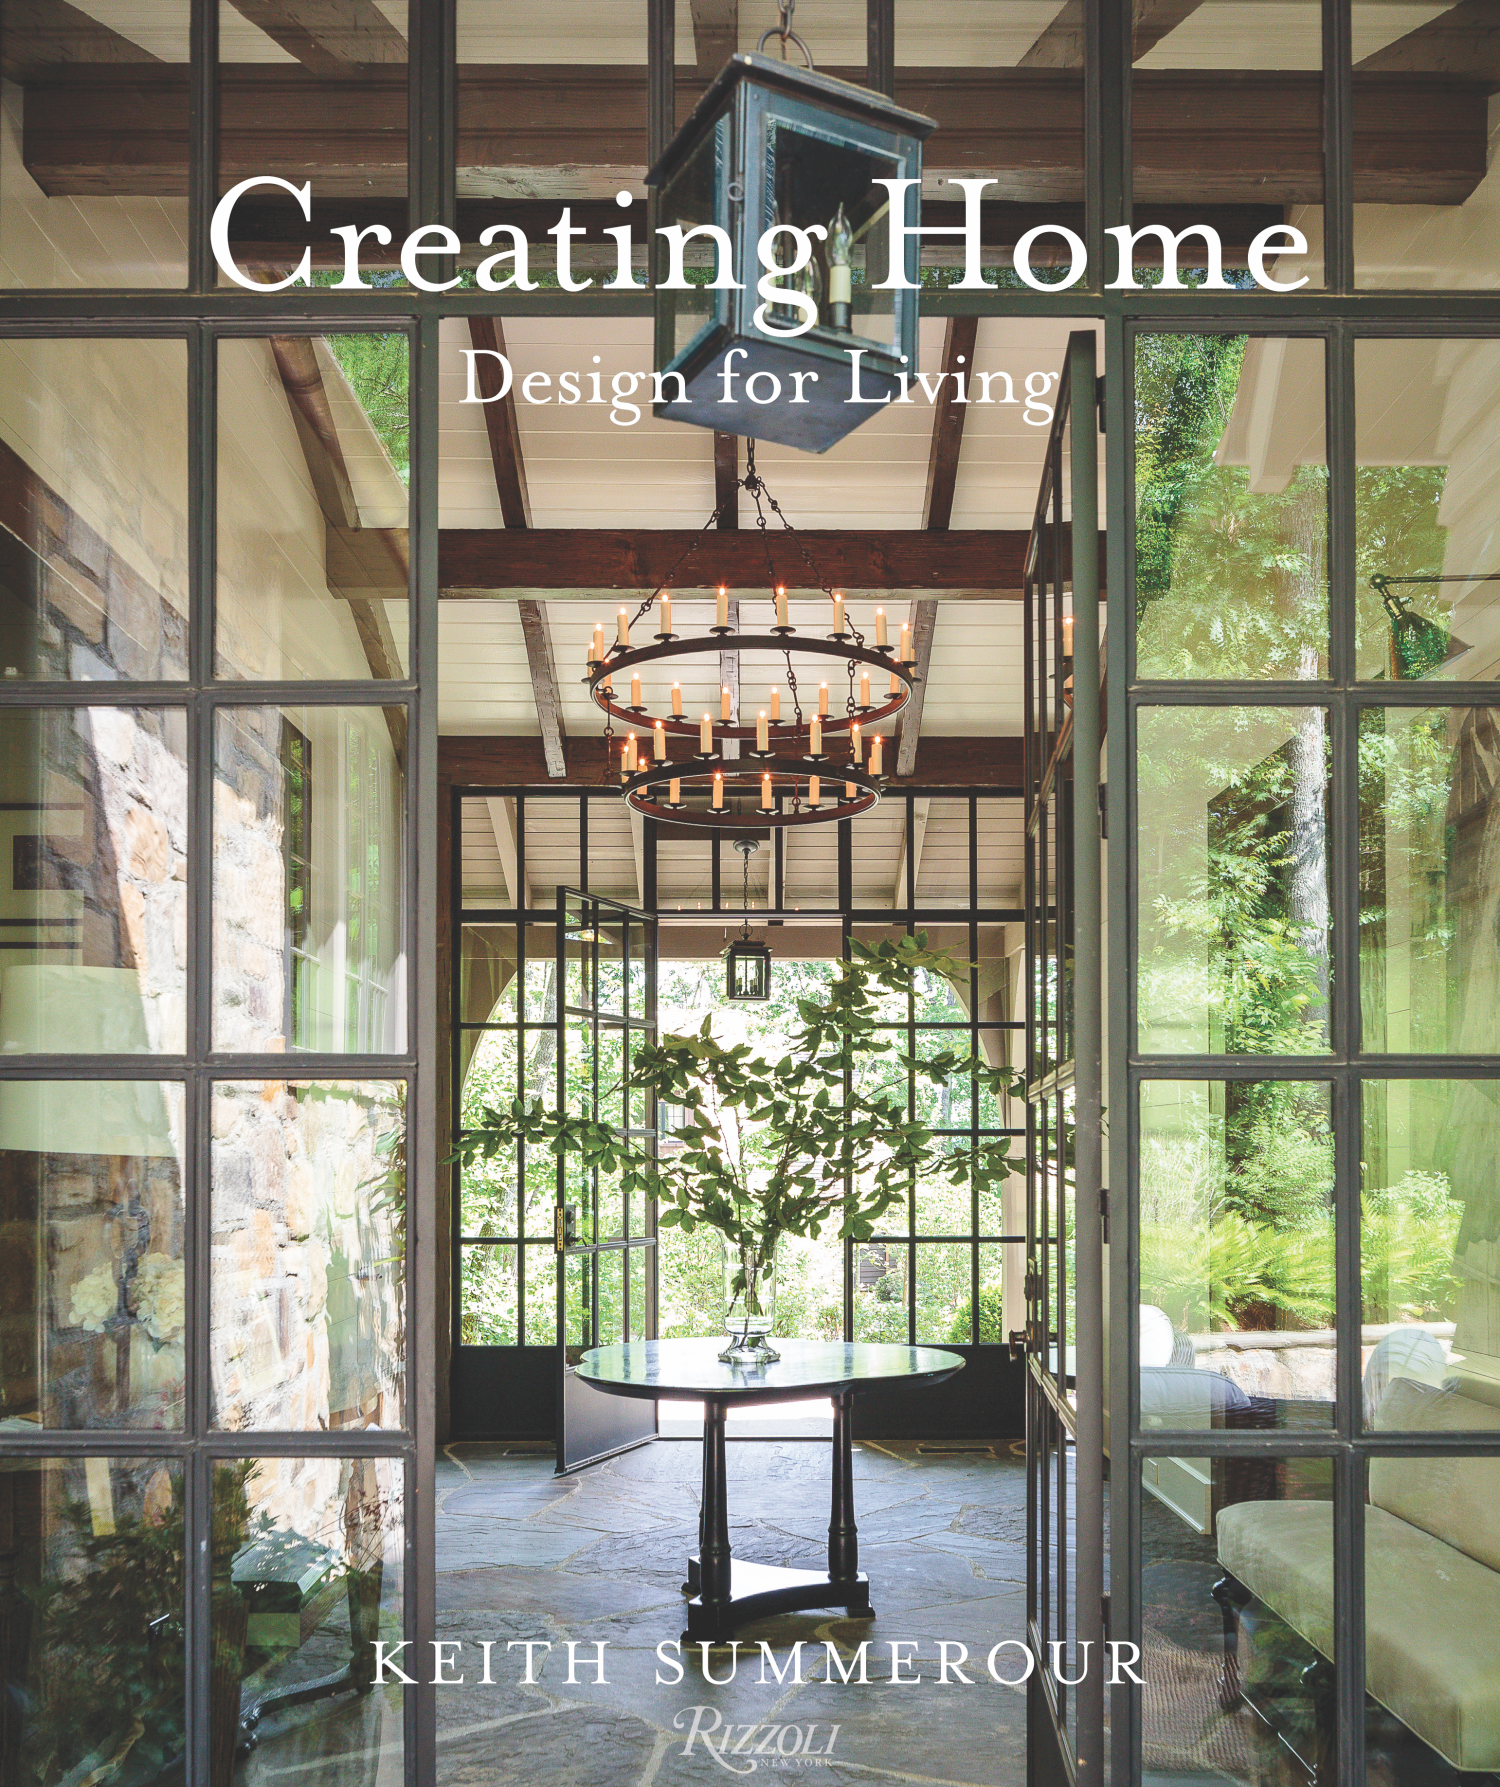 book cover for Creating Home: Design For Living by Keith Summerour (Rizzoli New York, 2017)